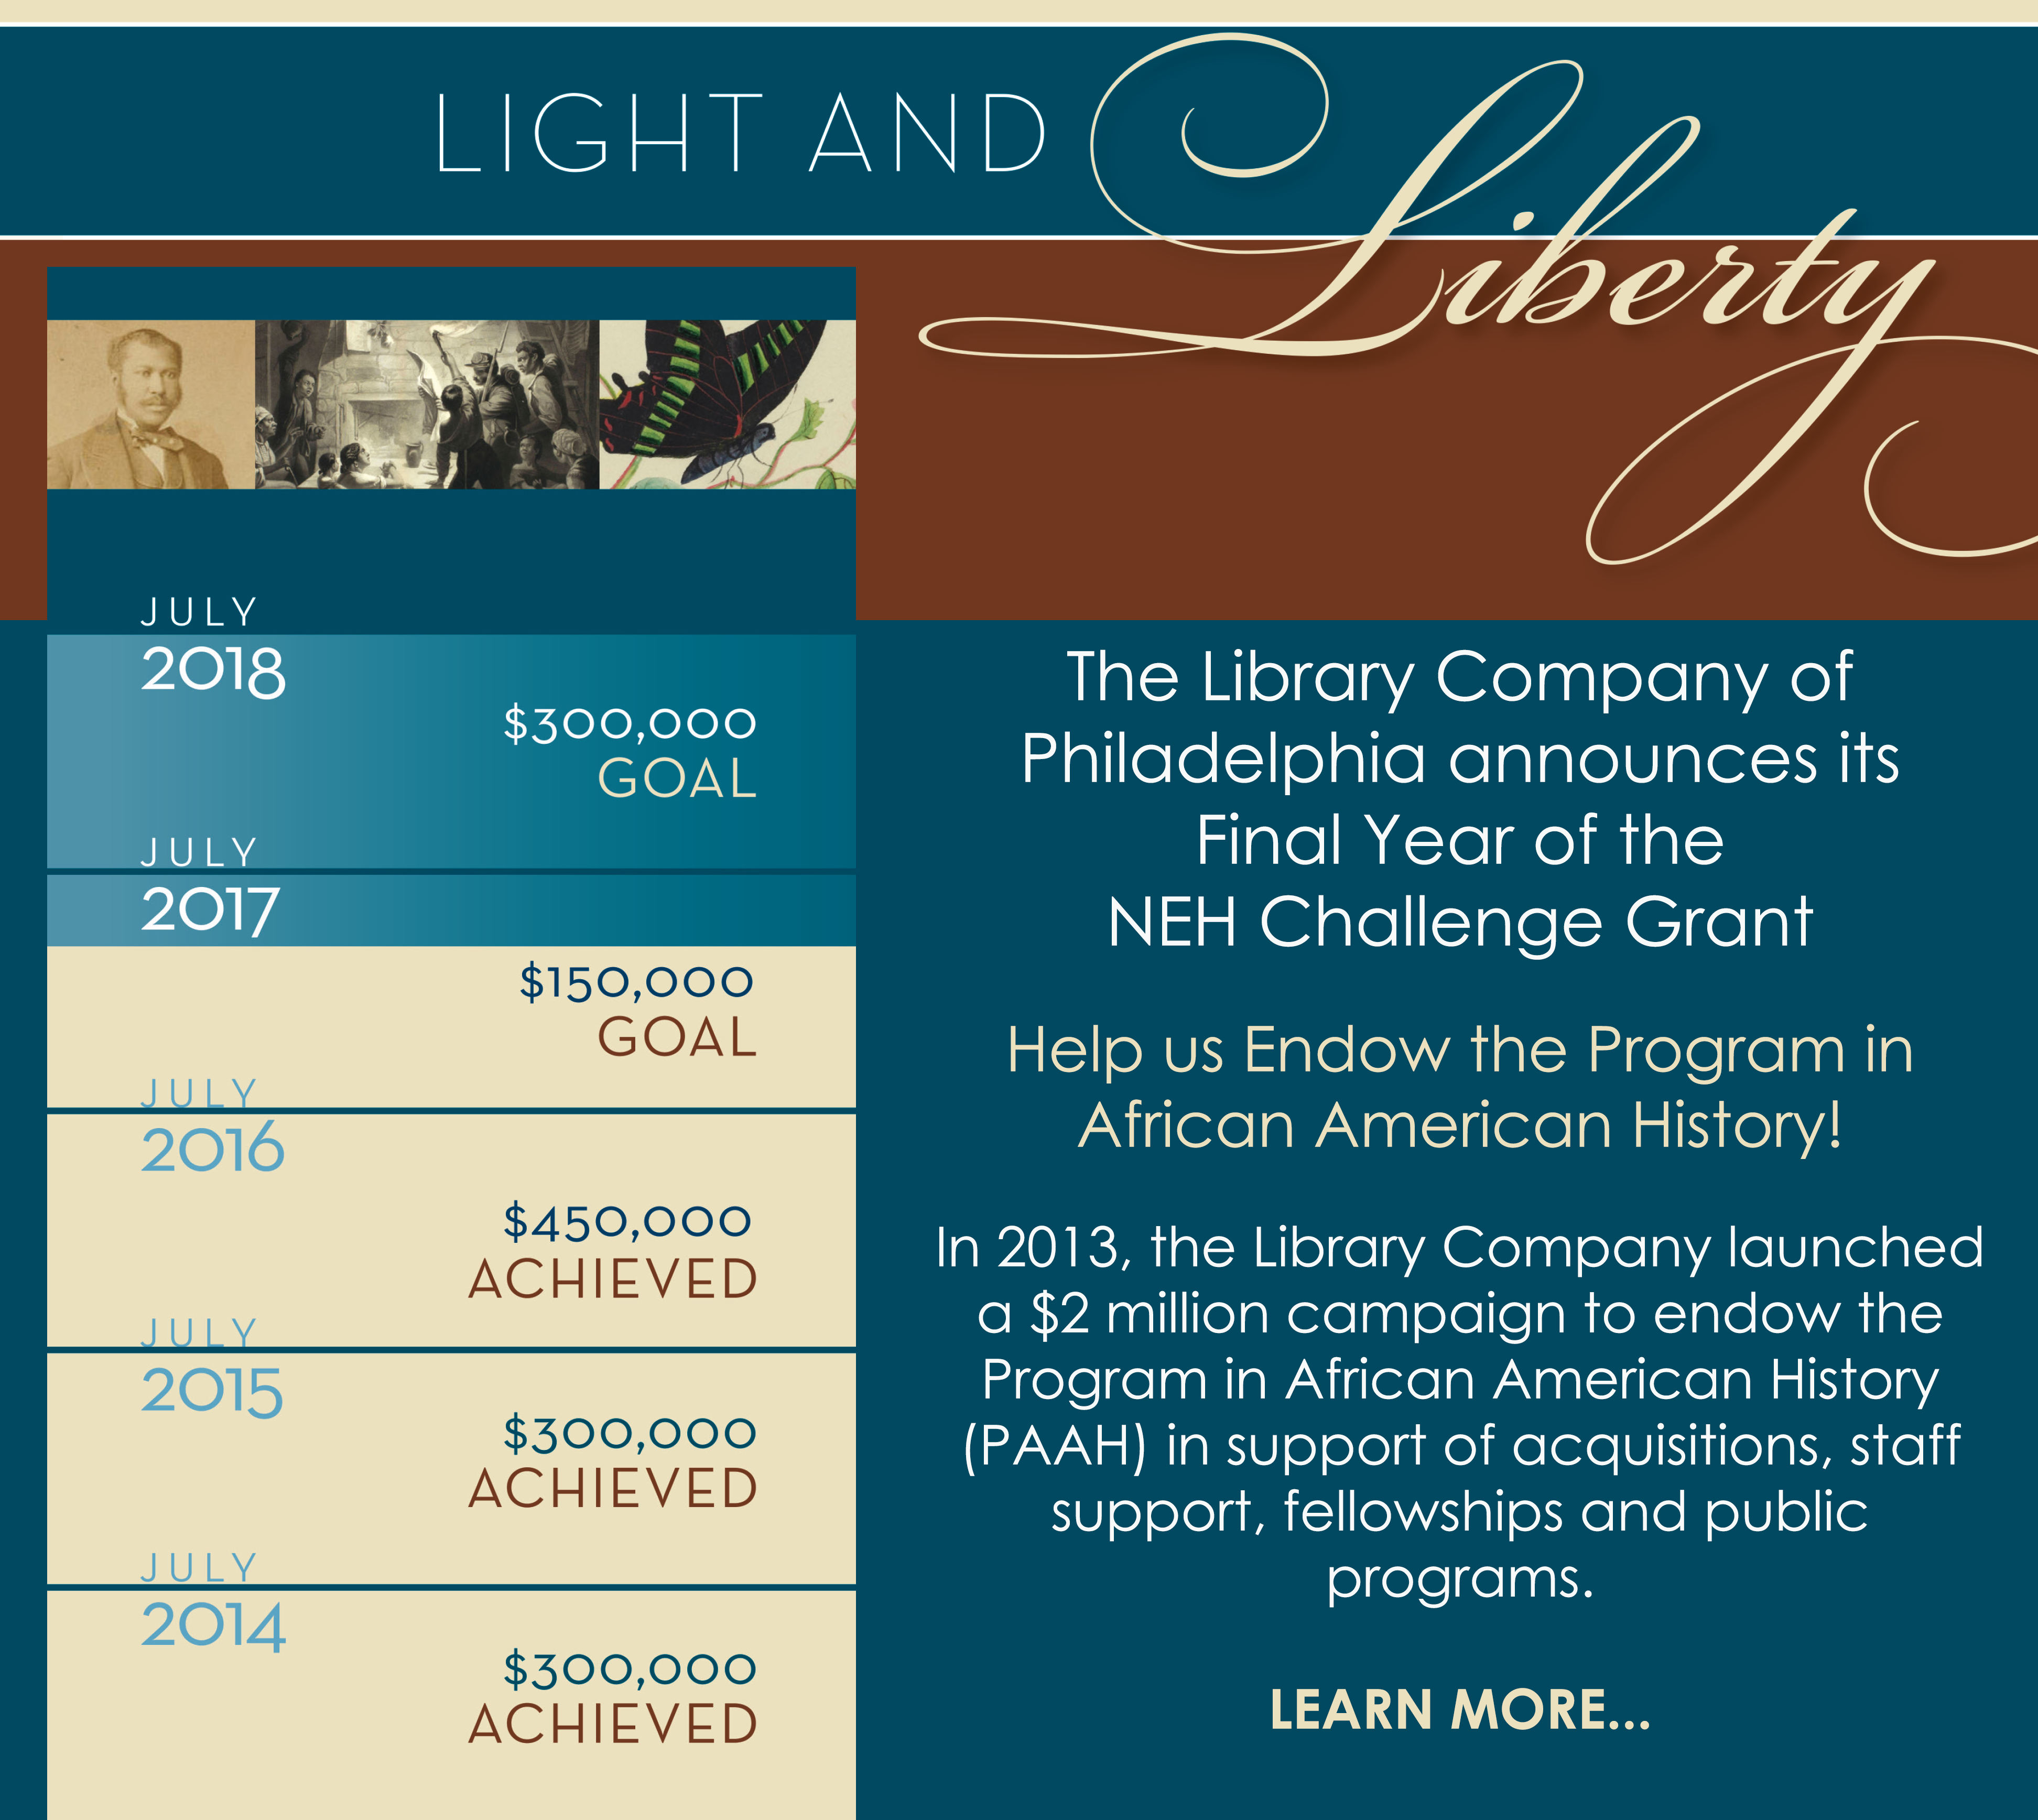 The Library Company of Philadelphia announces its Final Year of the NEH Challenge Grant Help us Endow the Program in African American History! In 2013, the Library Company launched a $2 million campaign to endow the Program in African American History (PAAH) in support of acquisitions, staff support, fellowships and public programs. Click iamge to LEARN MORE...